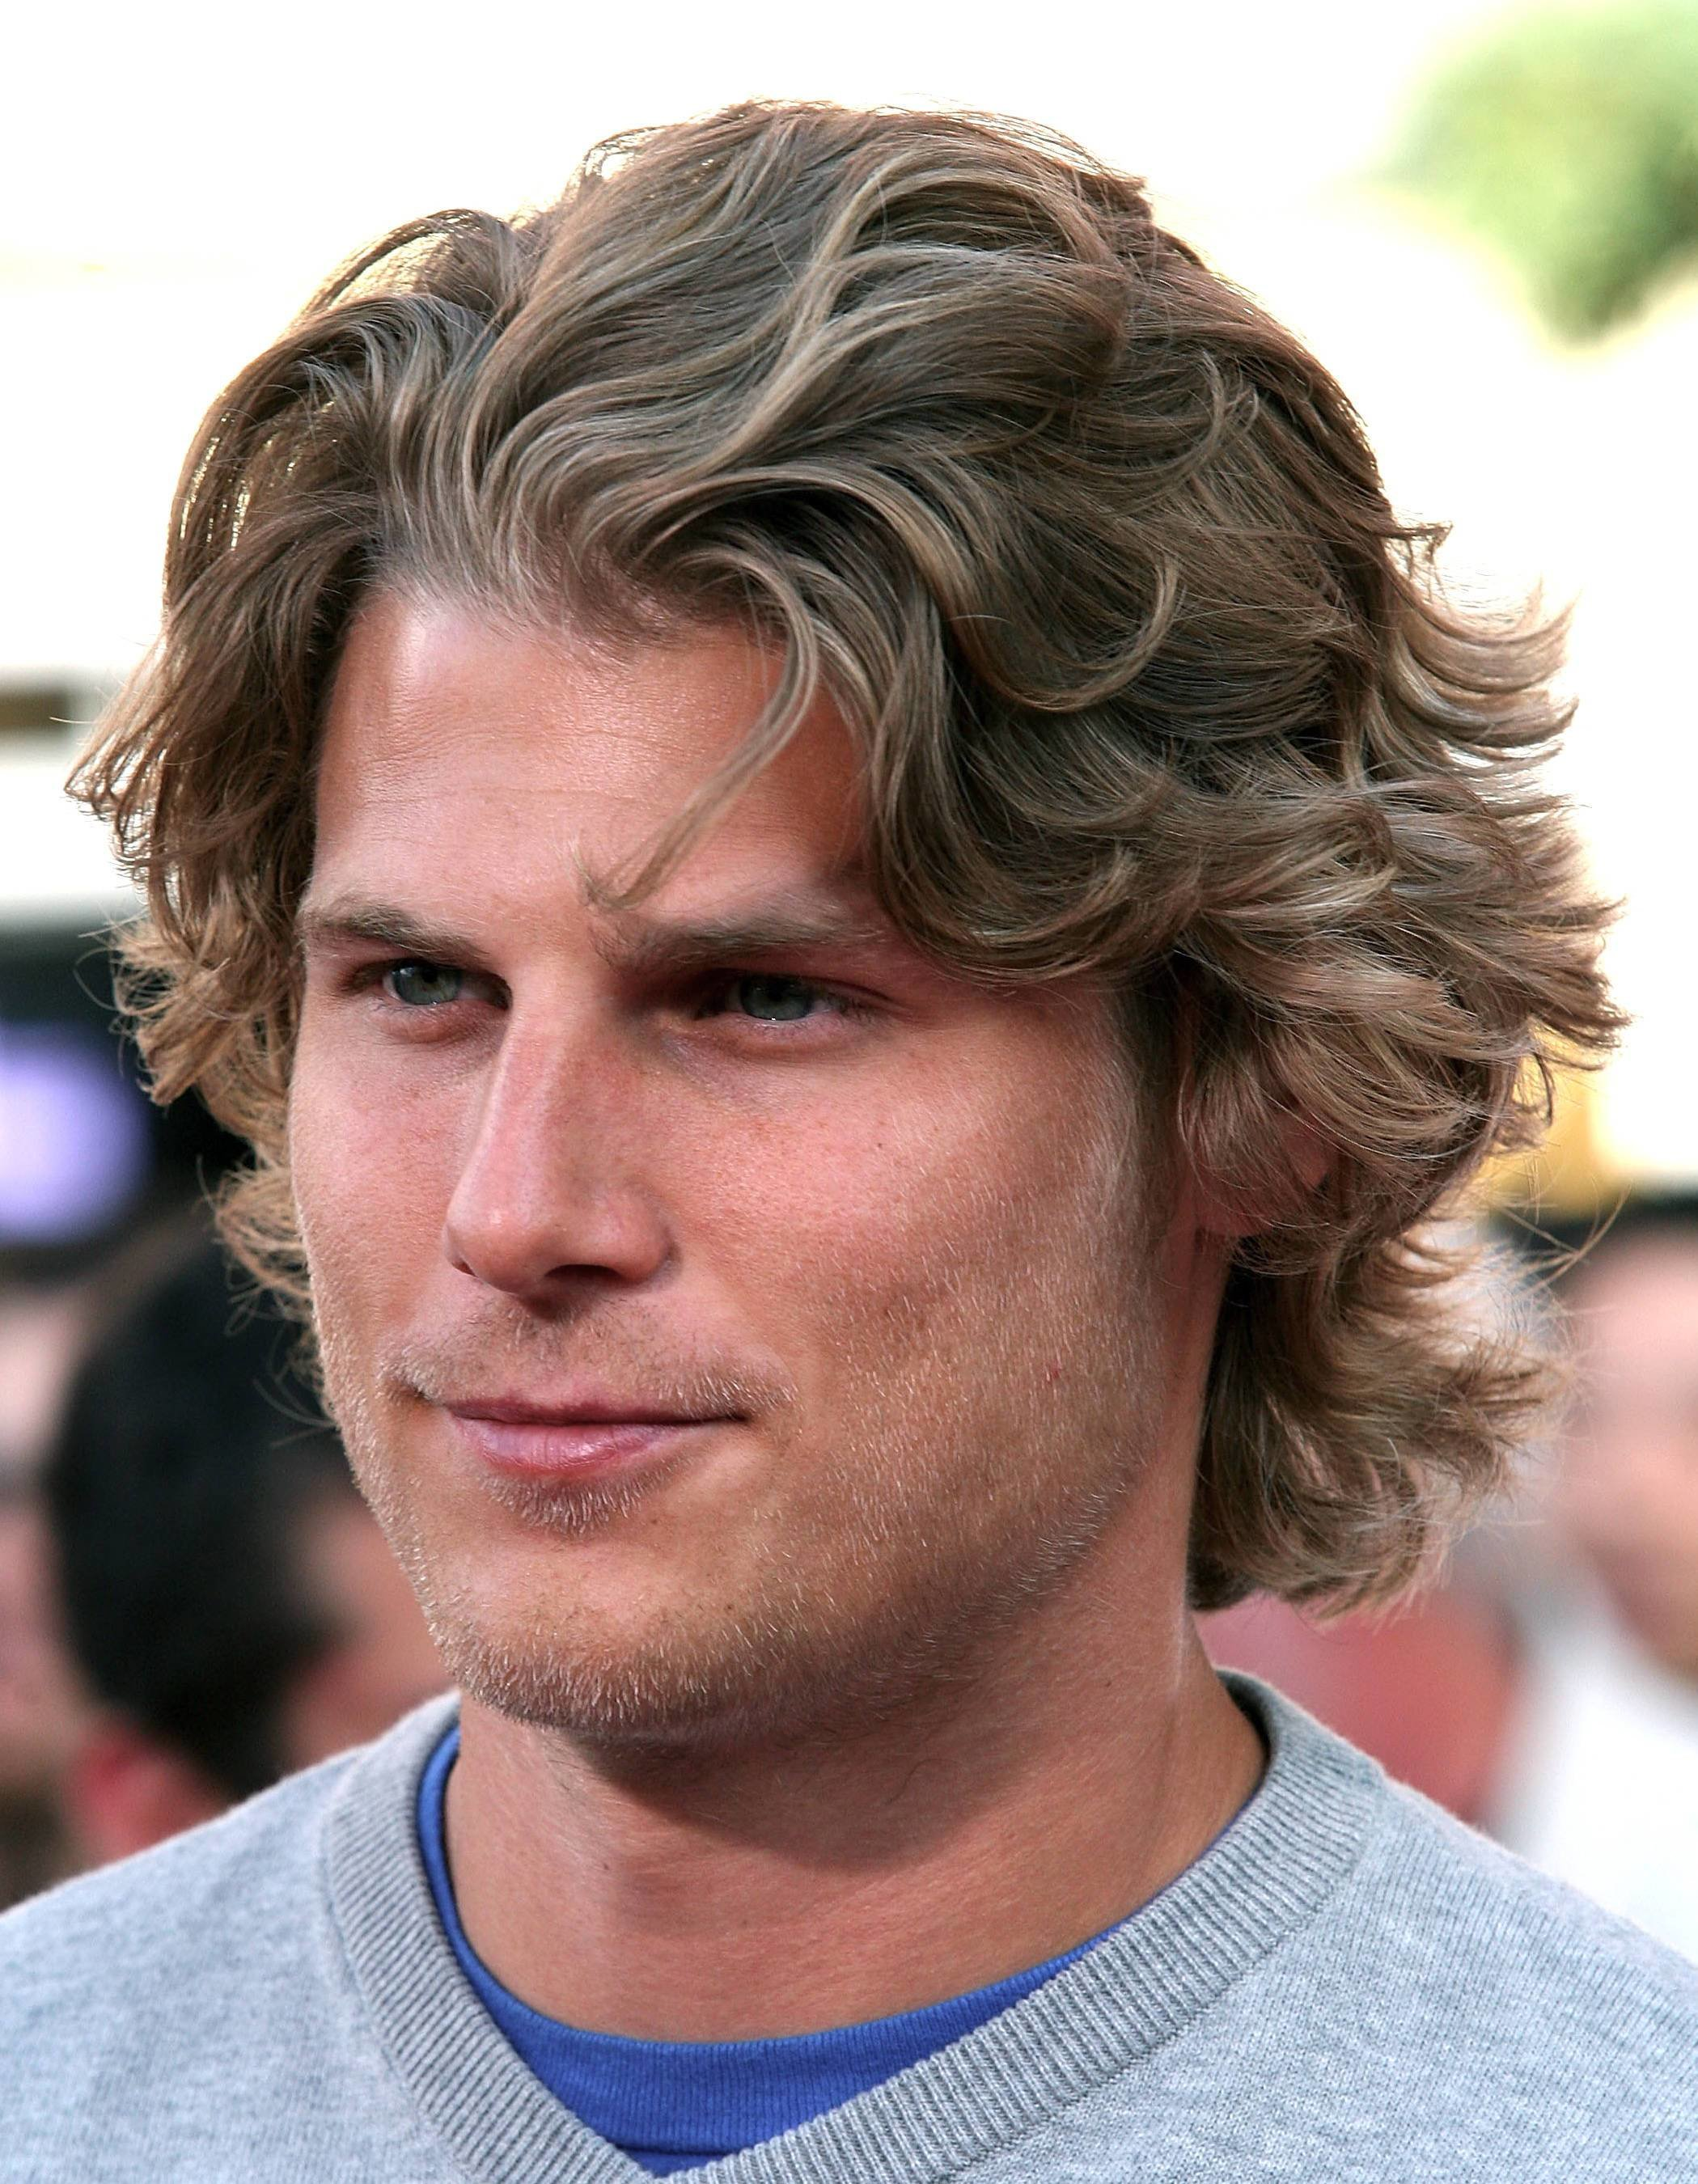 The Best Men's Long Hairstyles Stylespedia Com Pictures